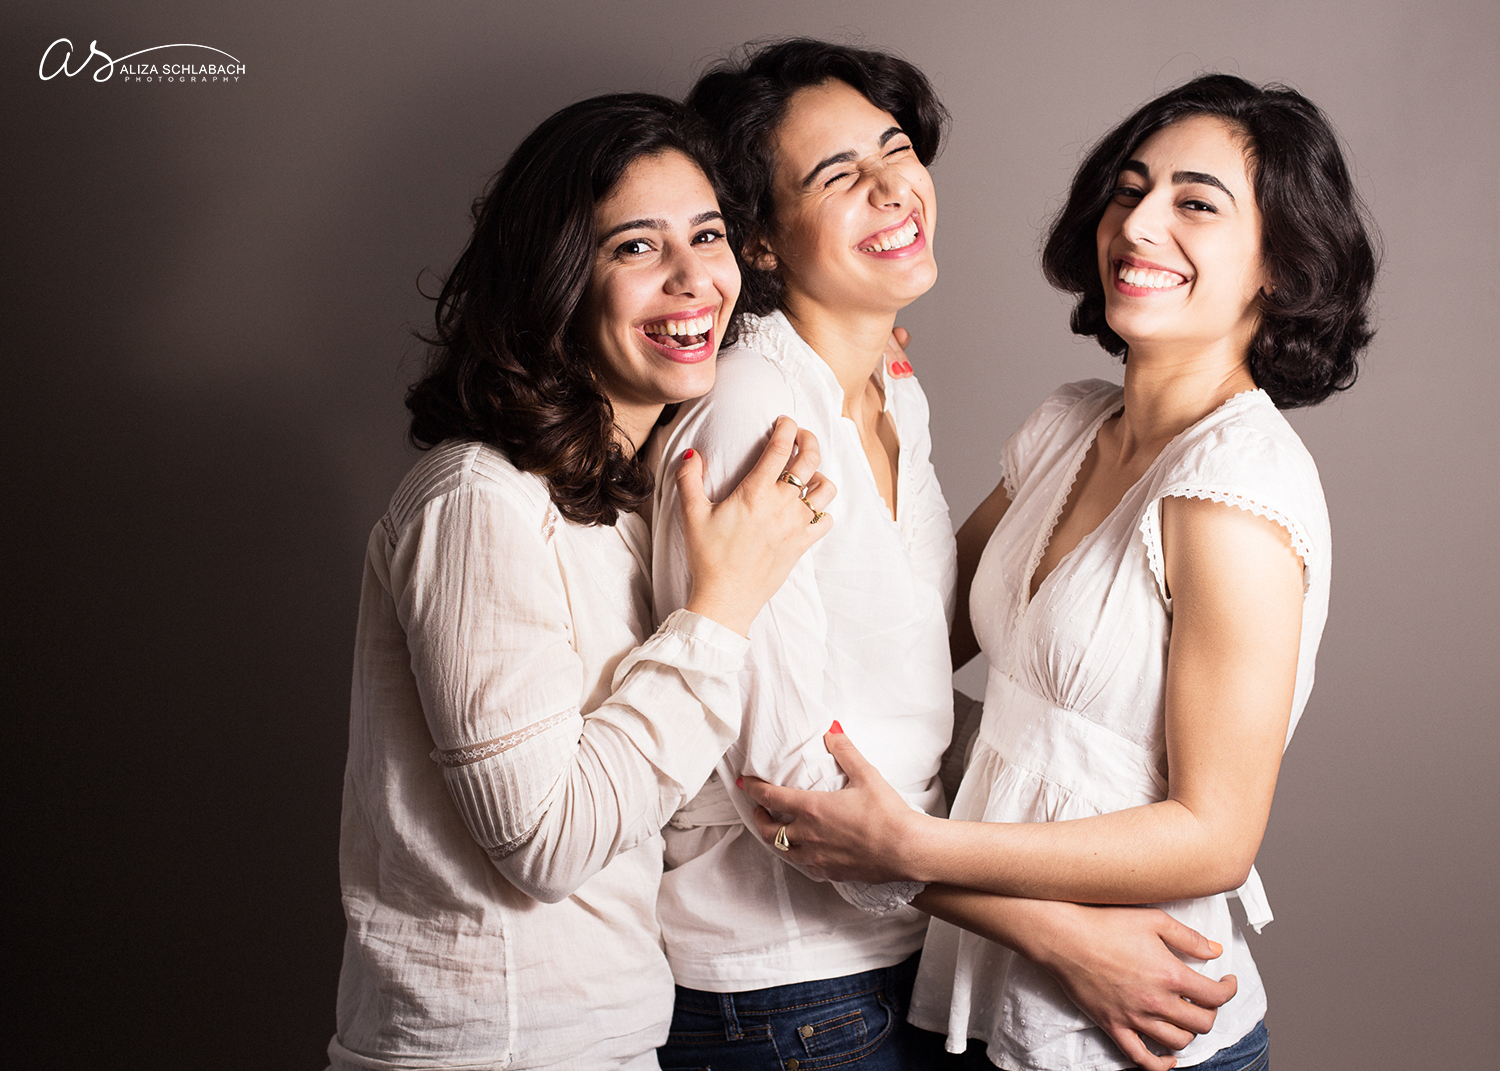 Photograph of three laughing dark haired beauties